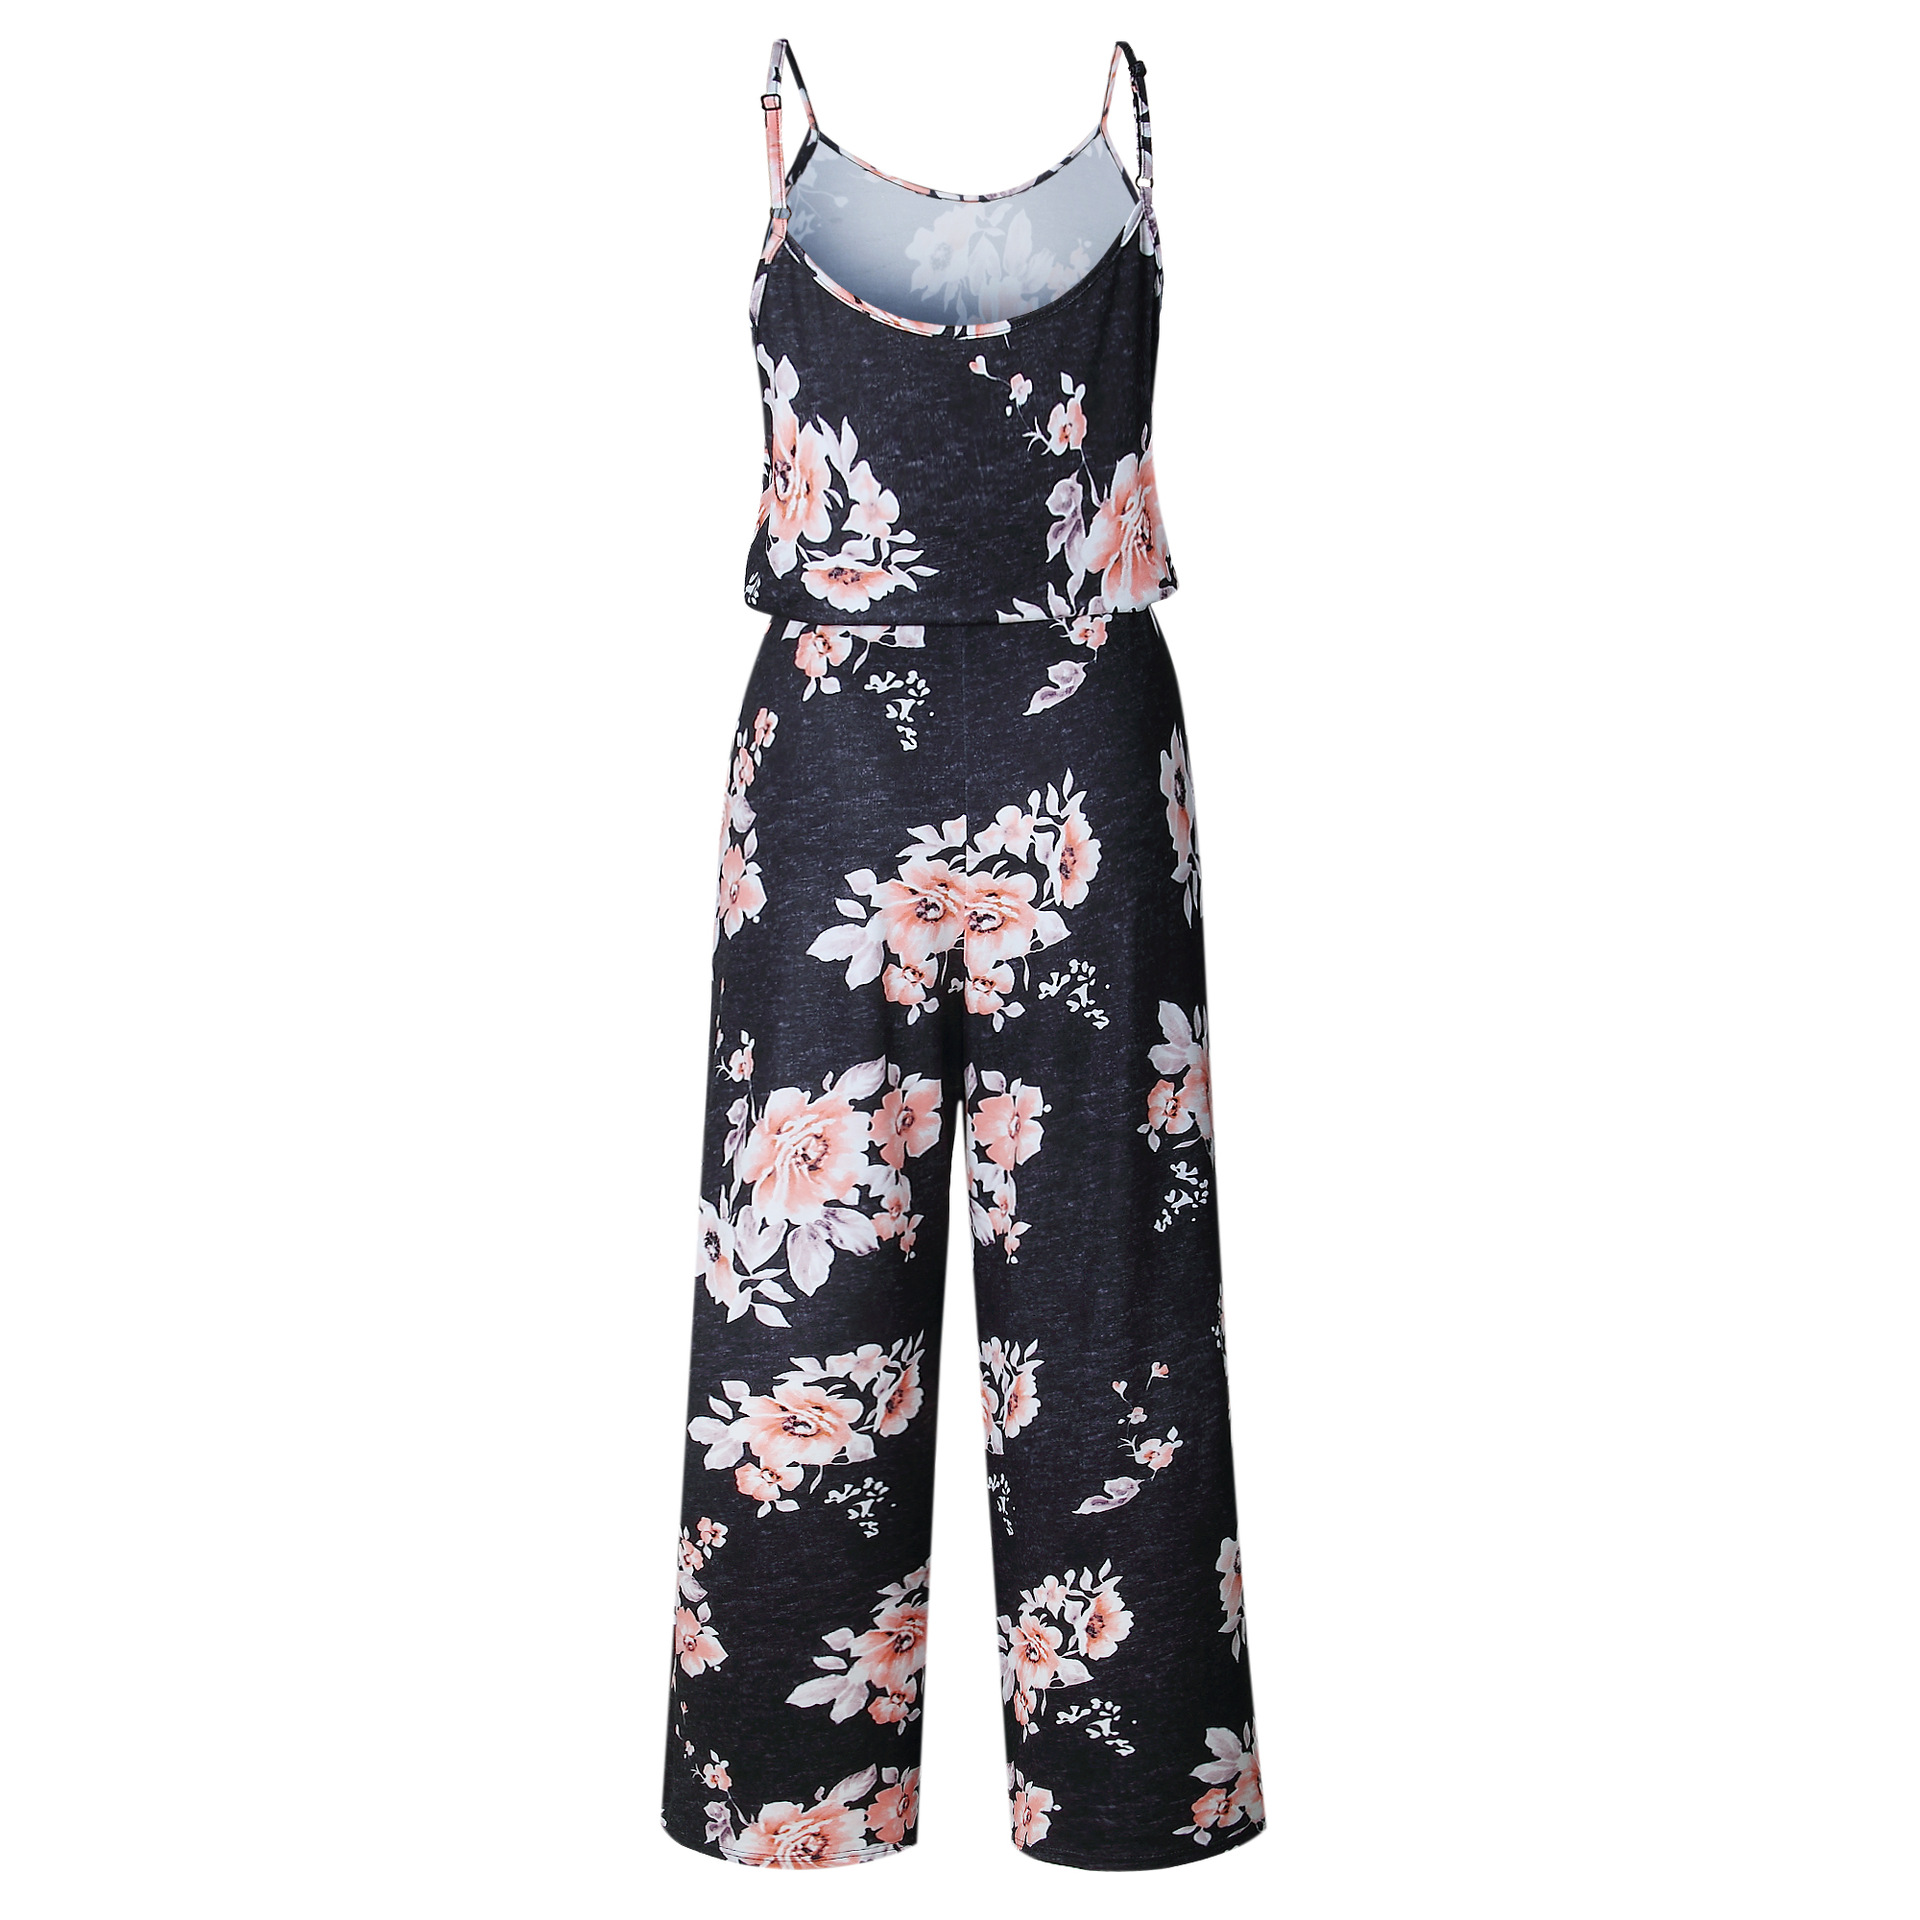 Spaghetti Strap Jumpsuit Women 2018 Summer Long Pants Floral Print Rompers Beach Casual Jumpsuits Sleeveless Sashes Playsuits 45